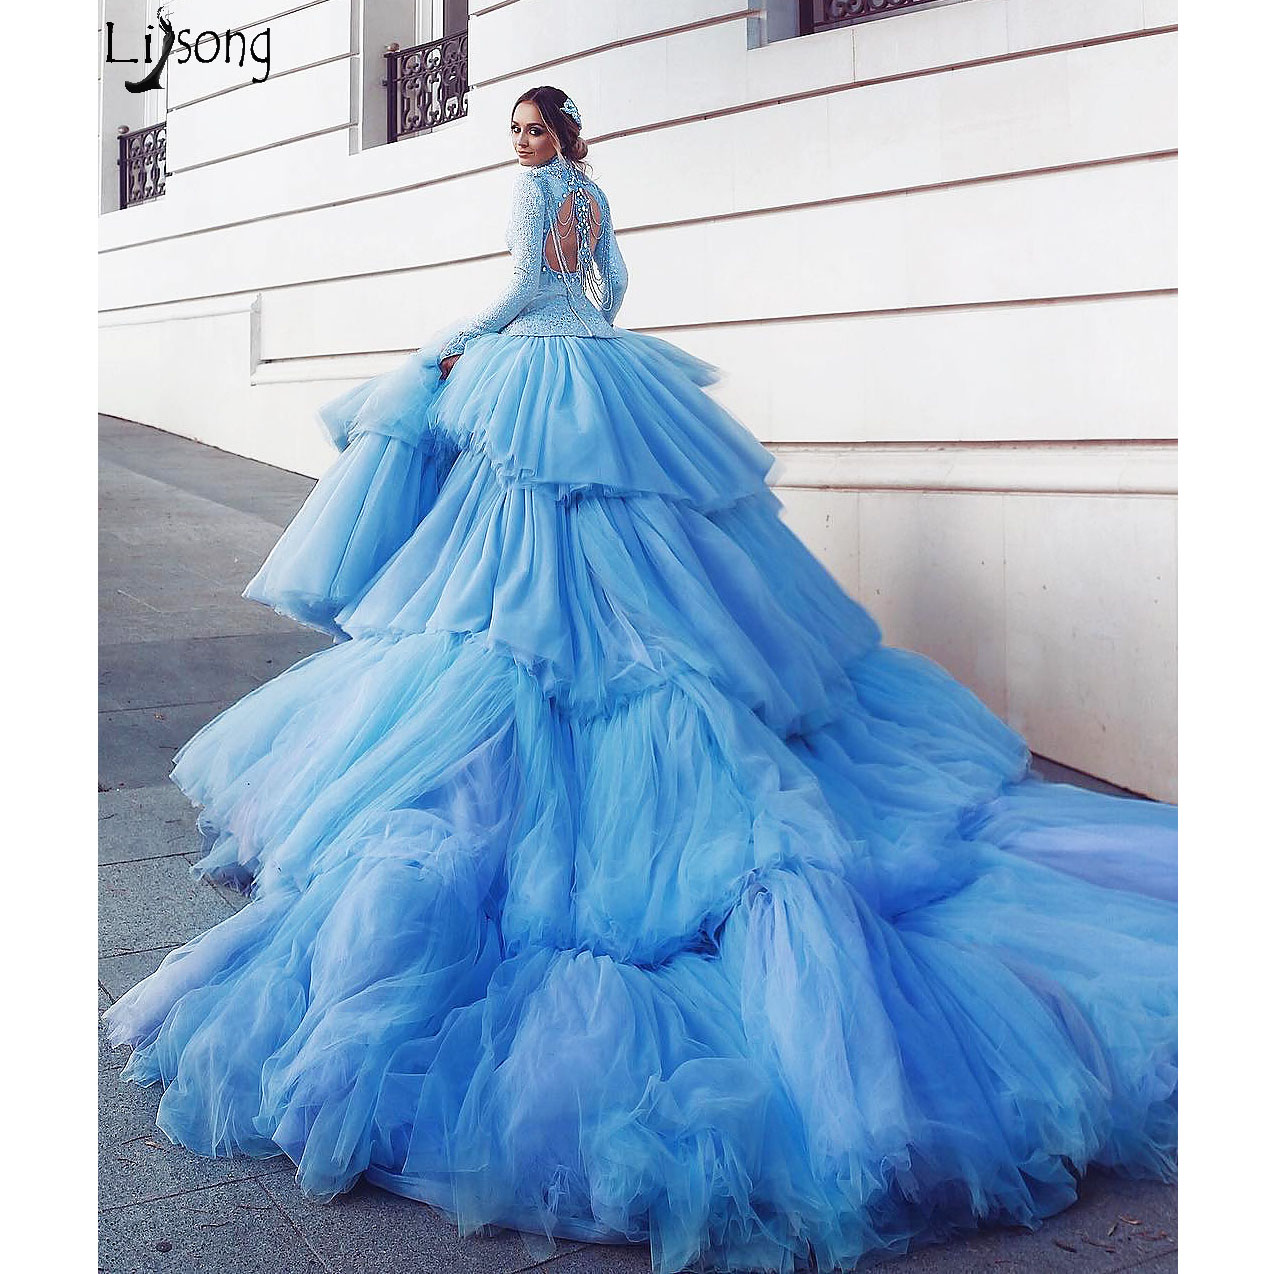 Amazing Blue Evening Dress 2020 Luxury Tiered Long Train Extra Puffy Tulle Prom Dresses Long Sleeve High Neck Lace Formal Gown